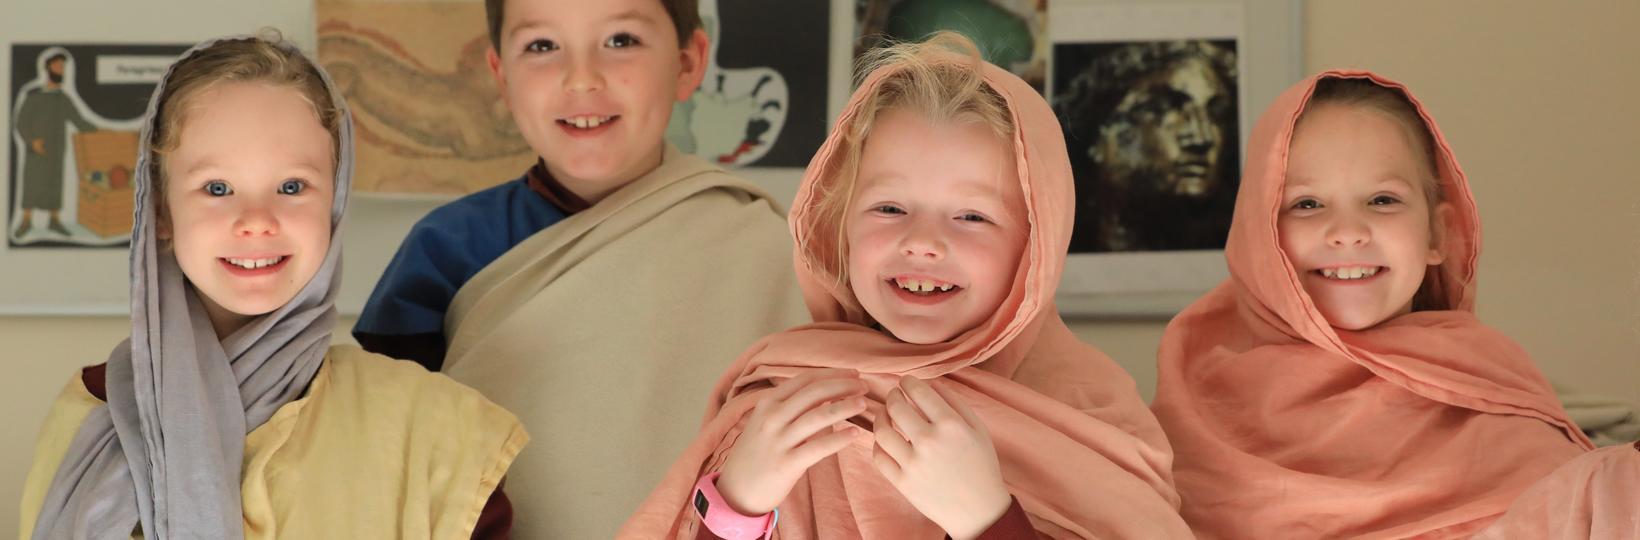 Image: Pupils dressed in togas